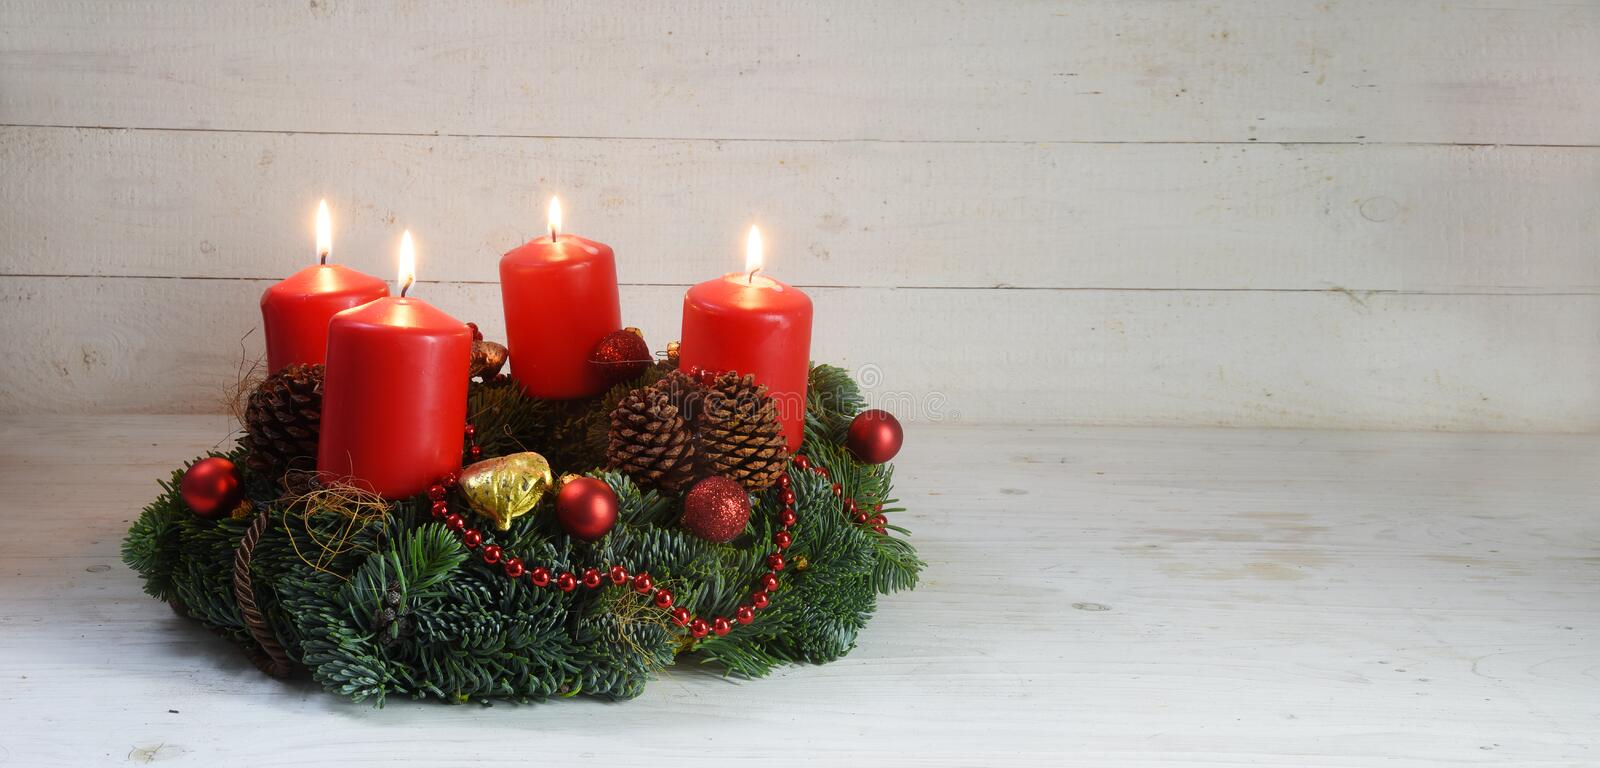 Advent wreath with four red burning candles and christmas decoration on rustic white wood, panorama format with copy space stock image